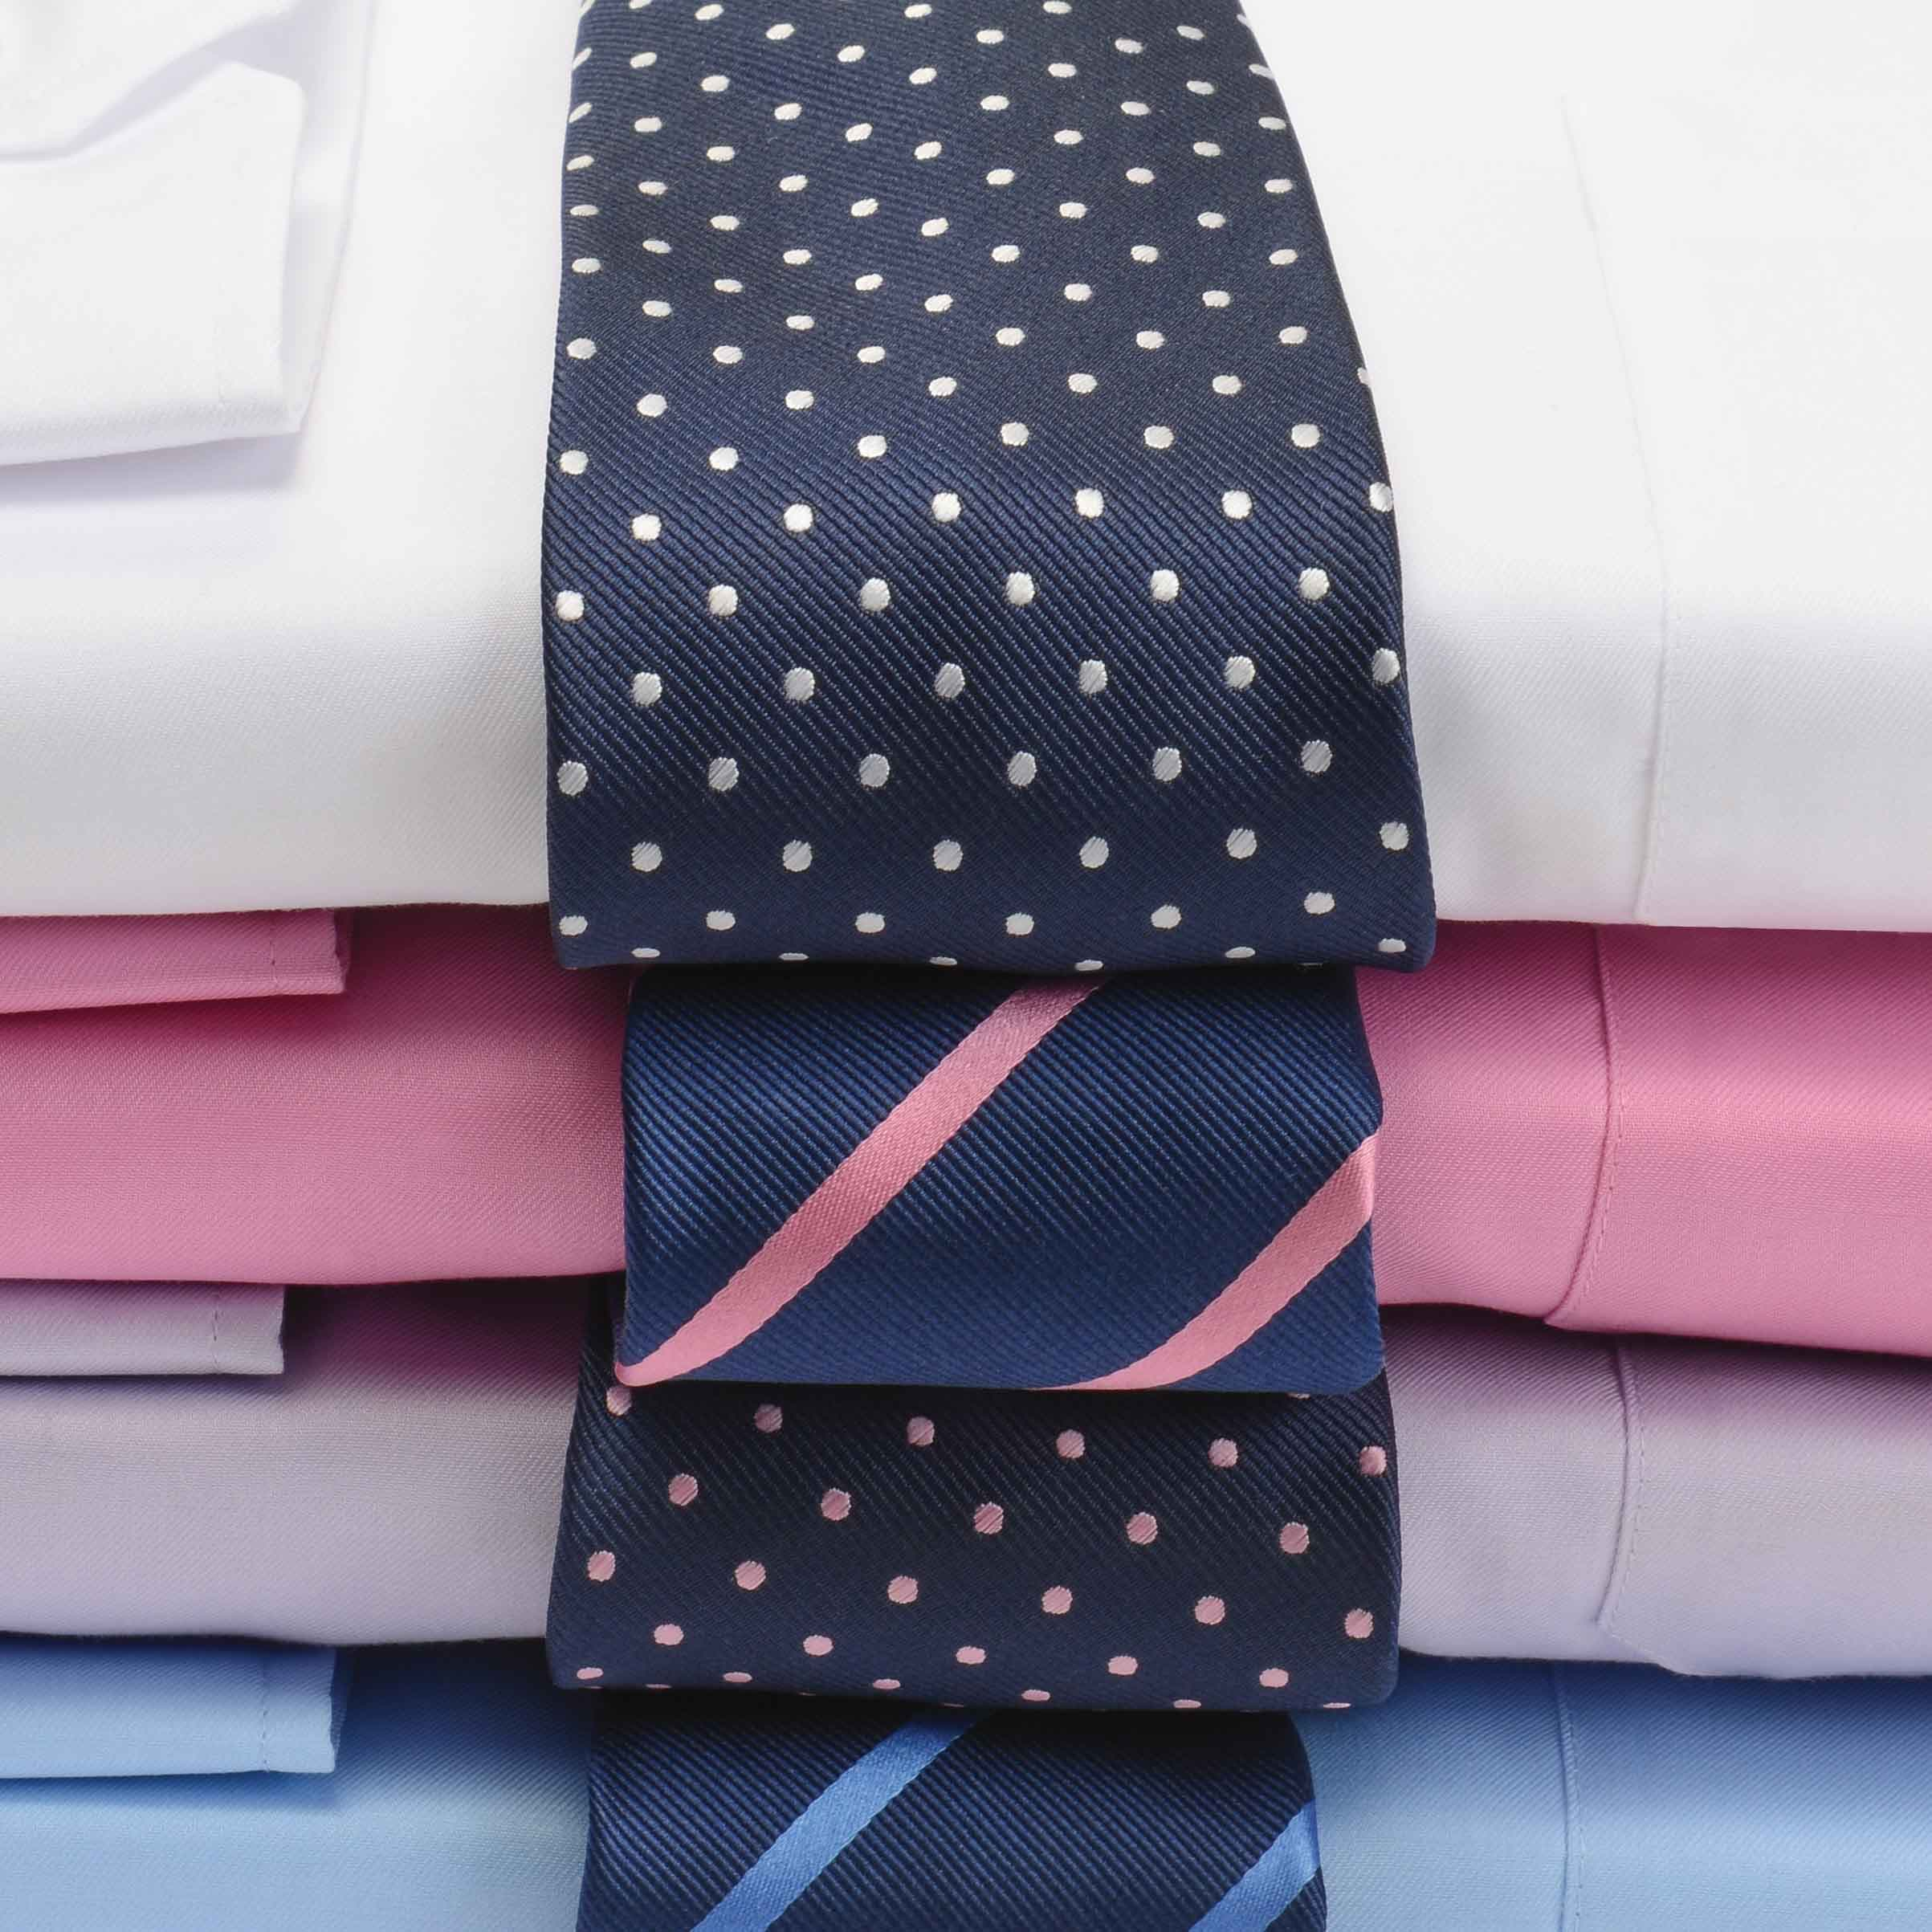 The Finest Non-Iron Shirts and How To Care For Them